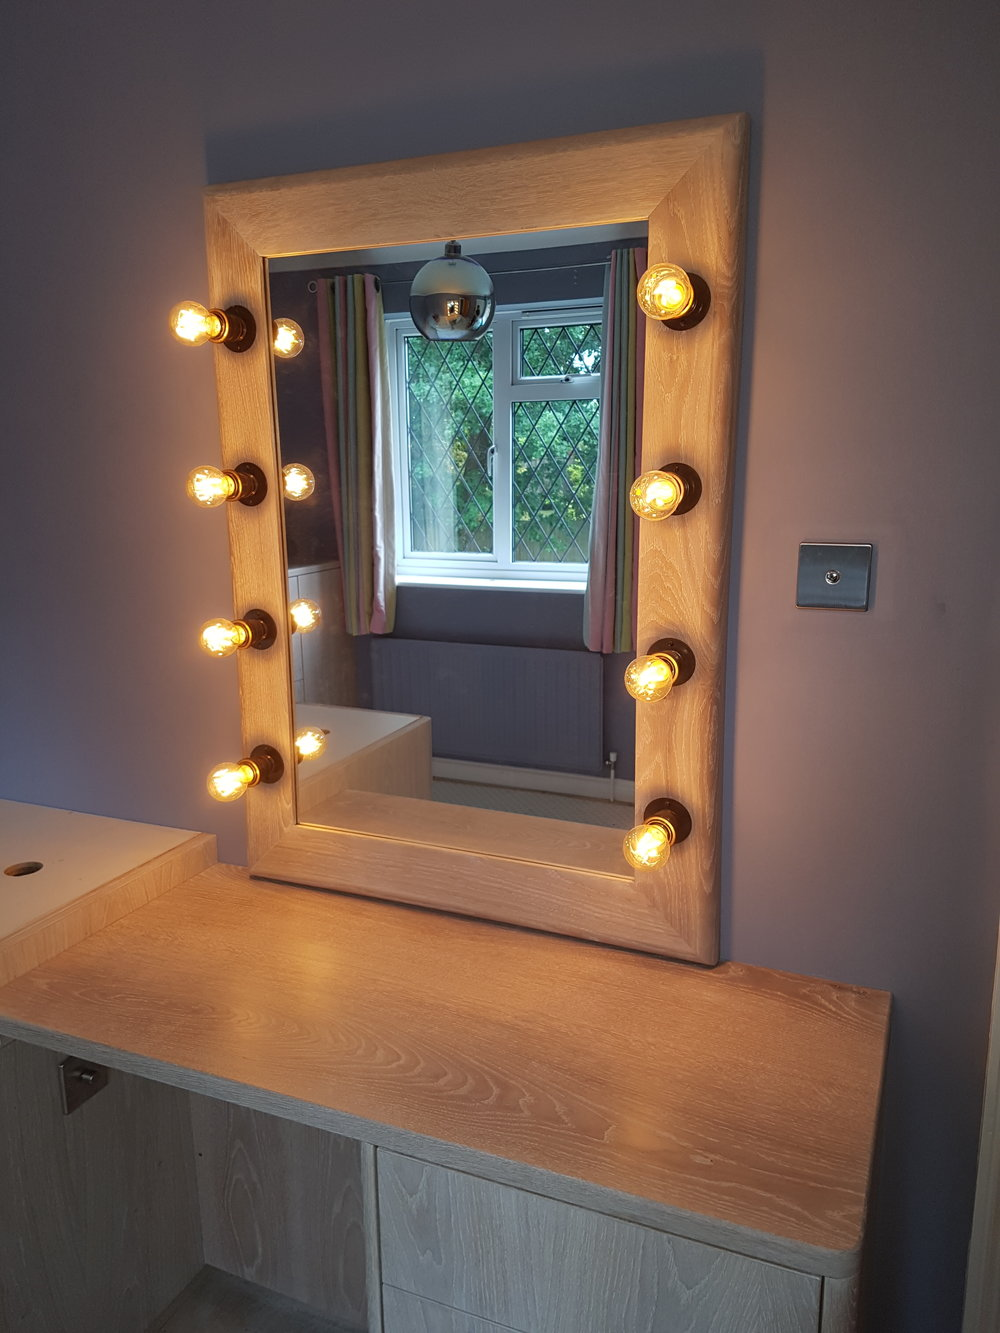 light up vanity mirror.jpg